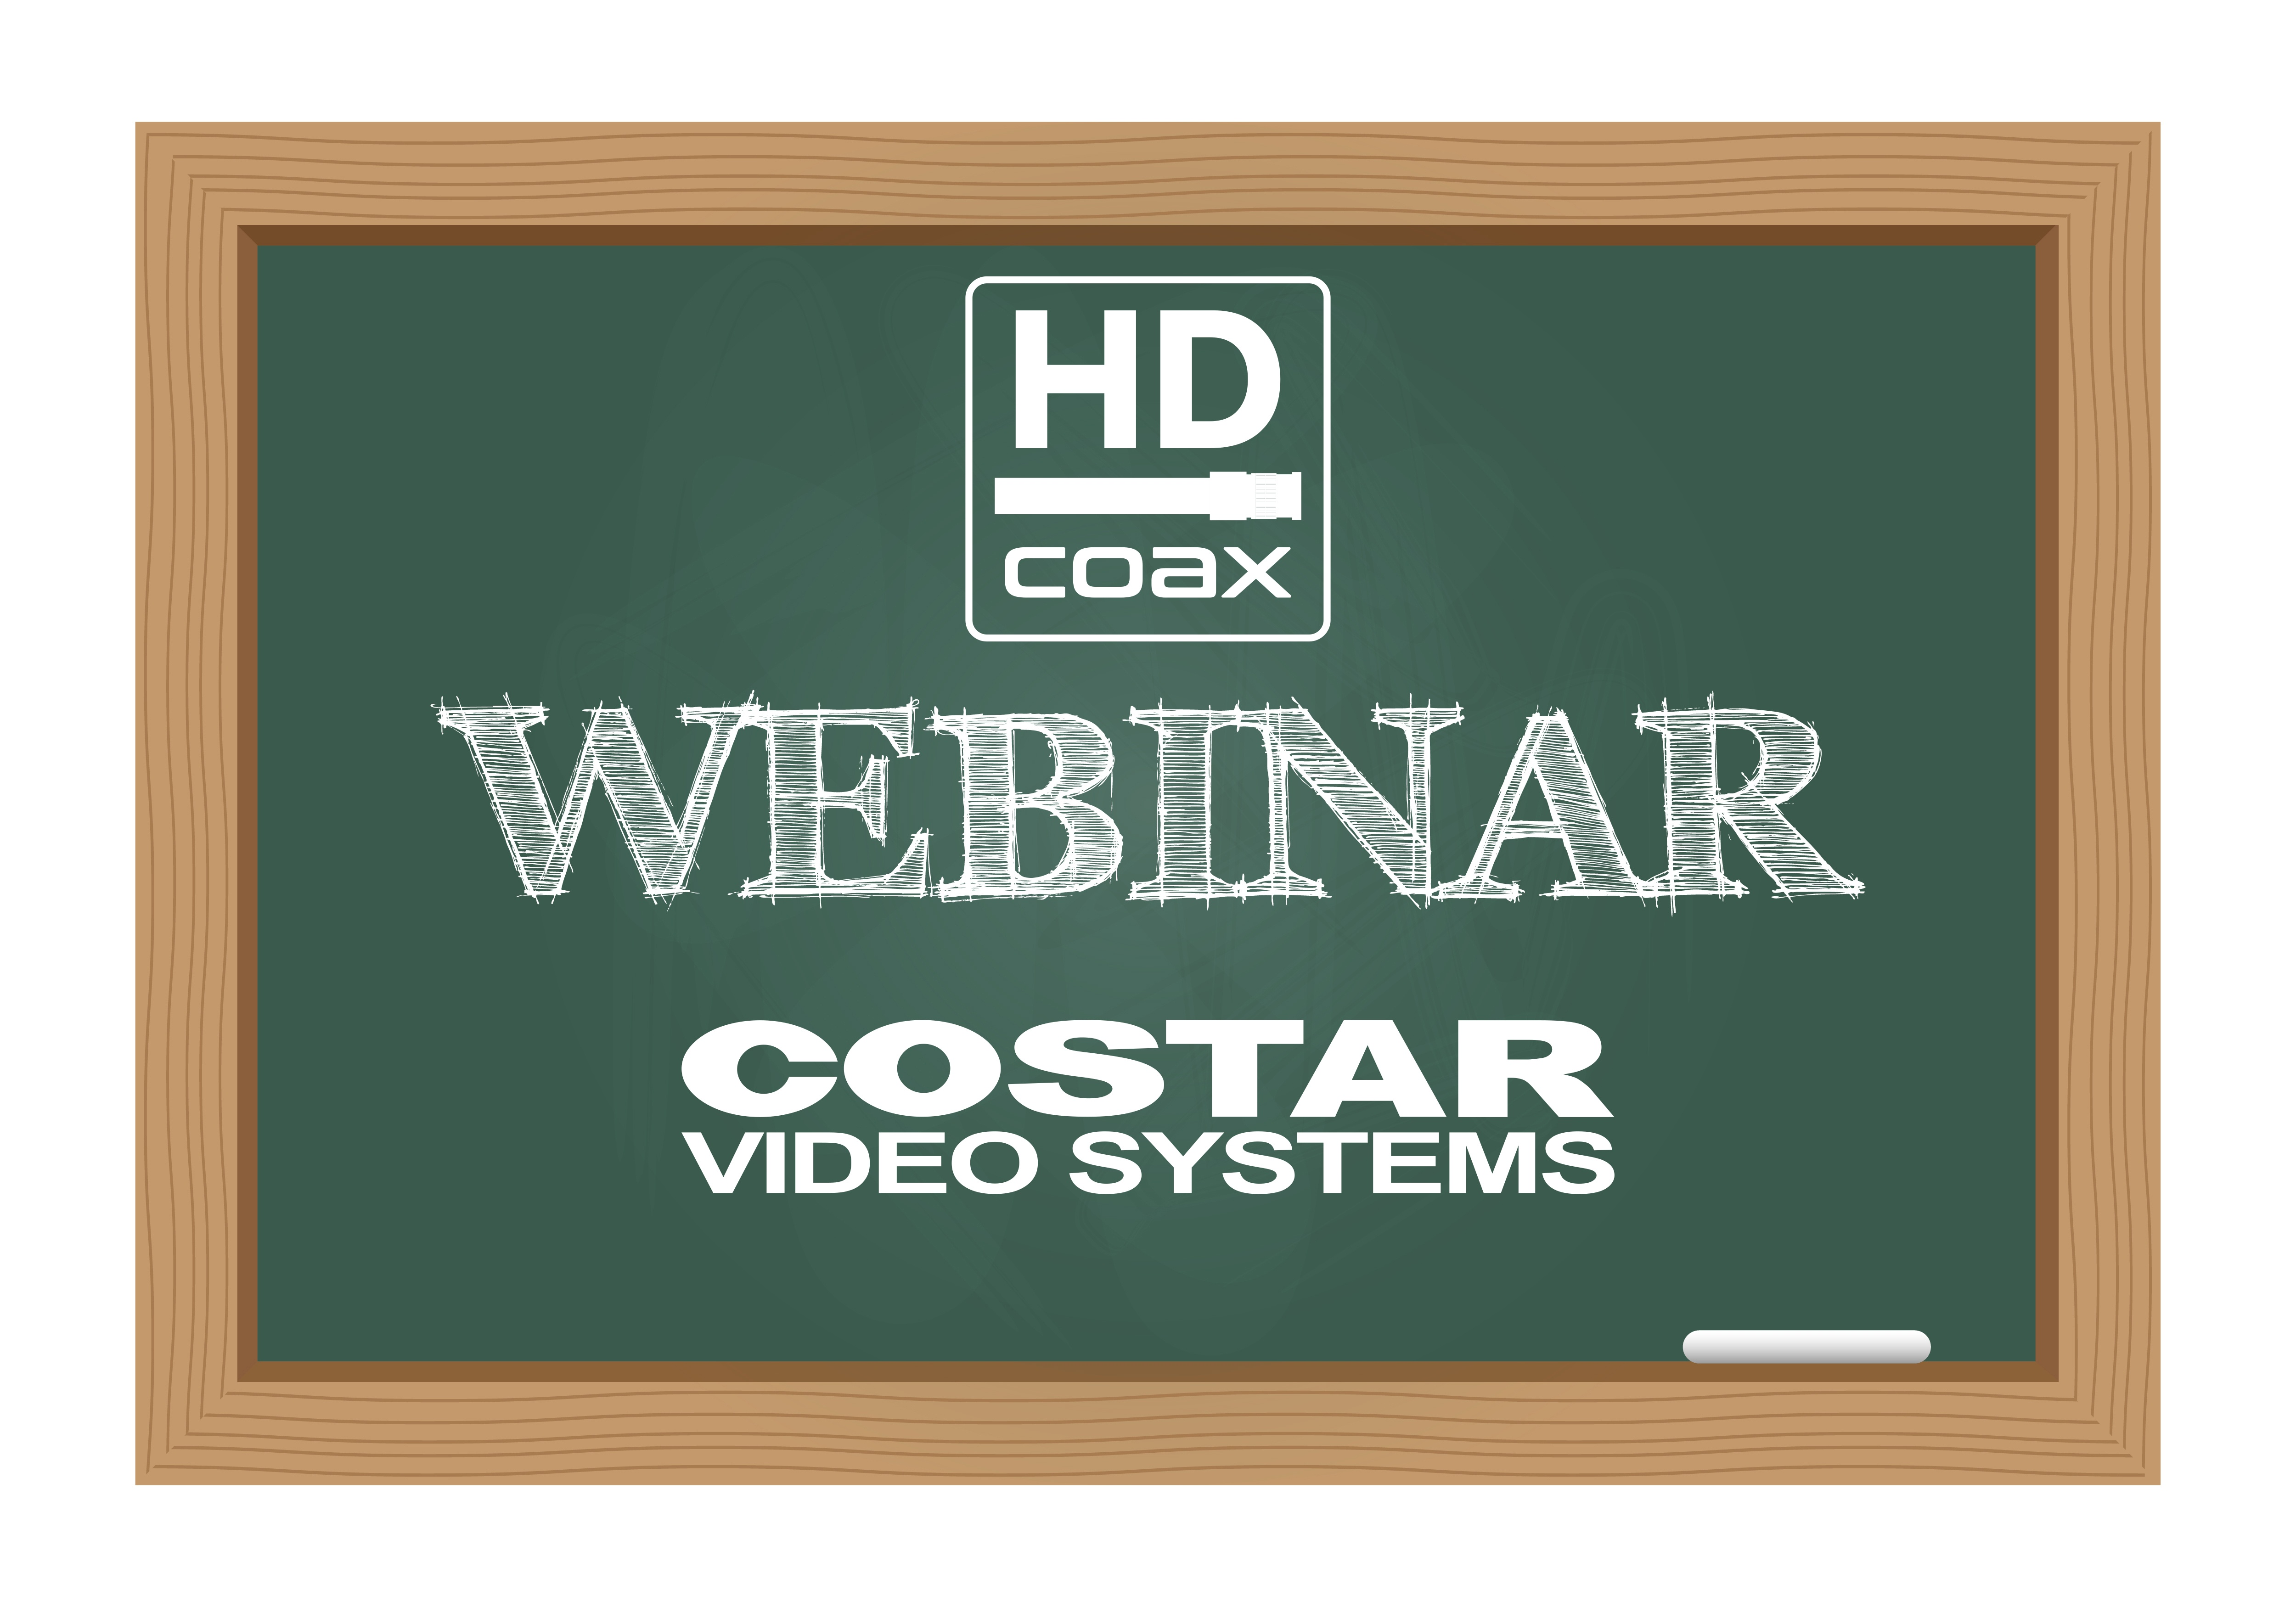 HD over Coax Webinar.jpg